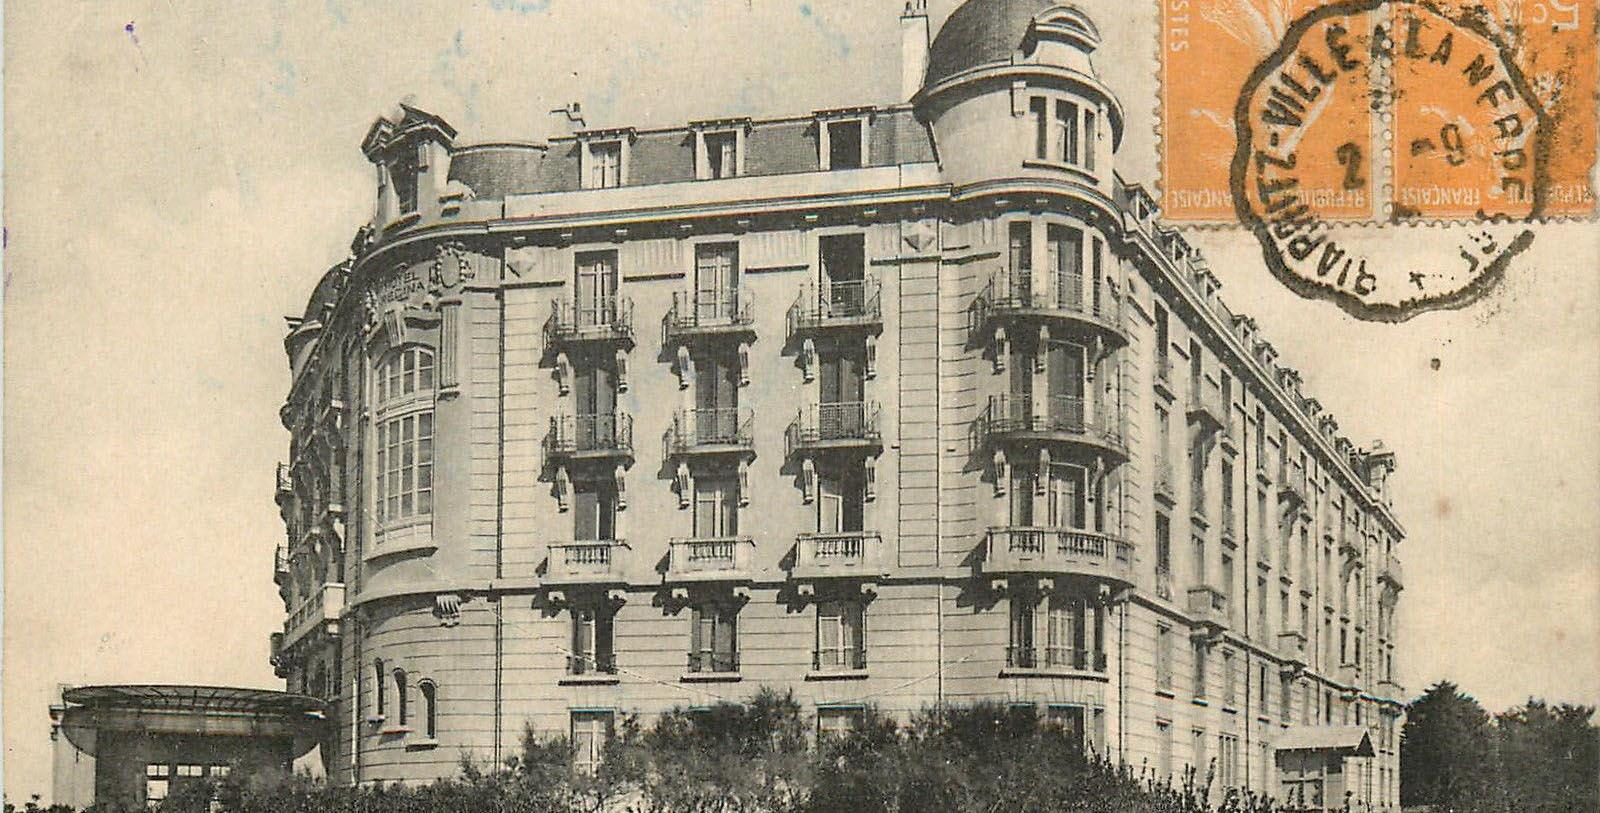 Historic Image of Hotel Exterior on Postcard Le Régina Biarritz Hôtel & Spa - MGallery by Sofitel, 1907, Member of Historic Hotels Worldwide, in Biarritz, France, Discover